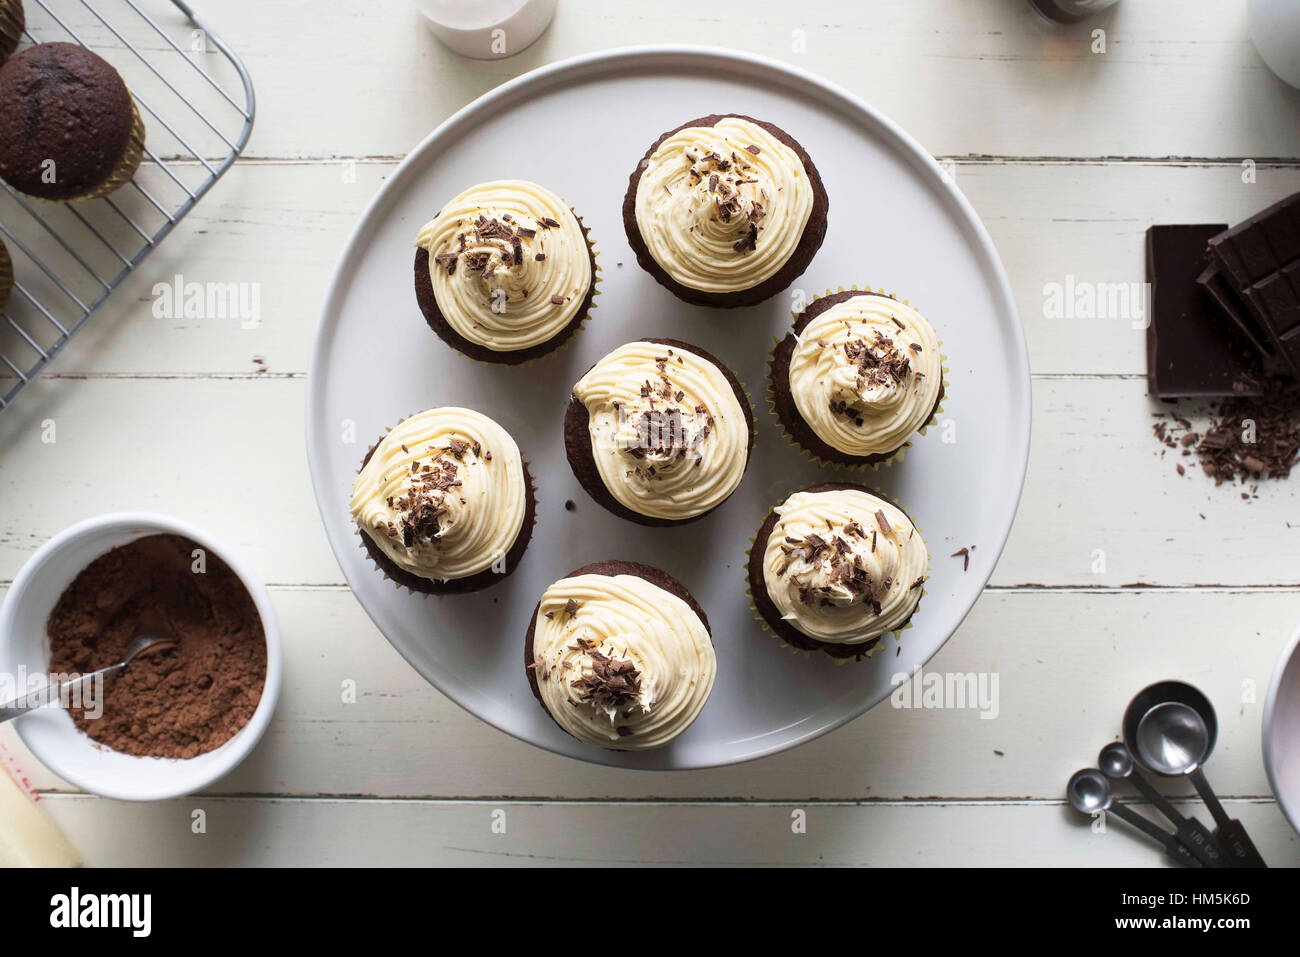 Overhead view of cupcakes on cakestand - Stock Image